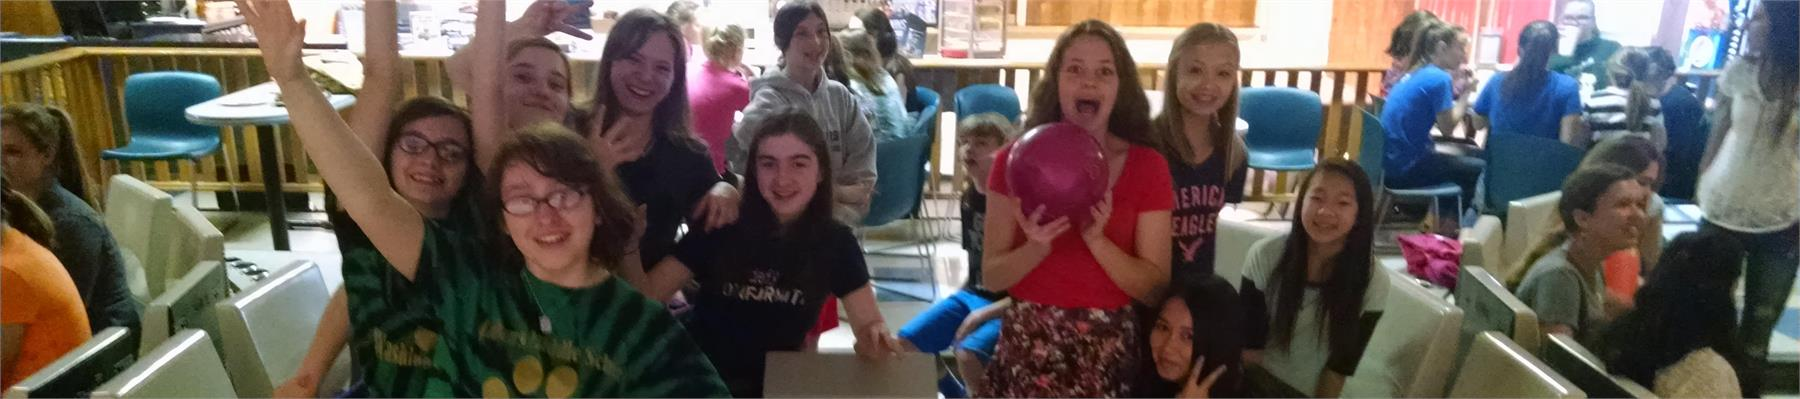 AMS Students Bowling